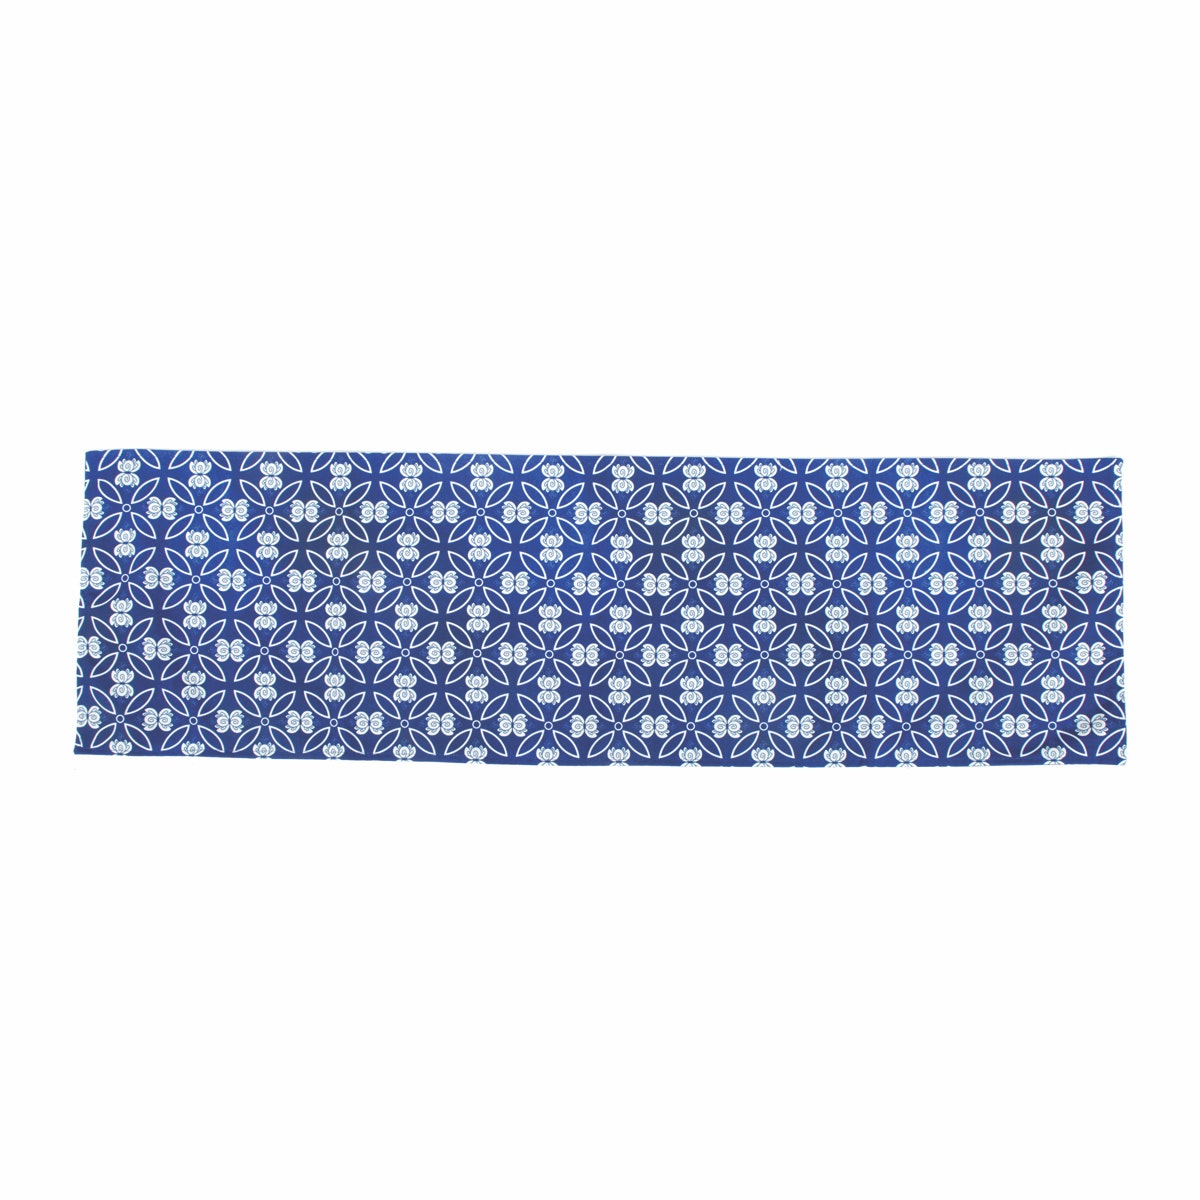 Glerry Home Decor Dew Blue Table Runner 100x30cm